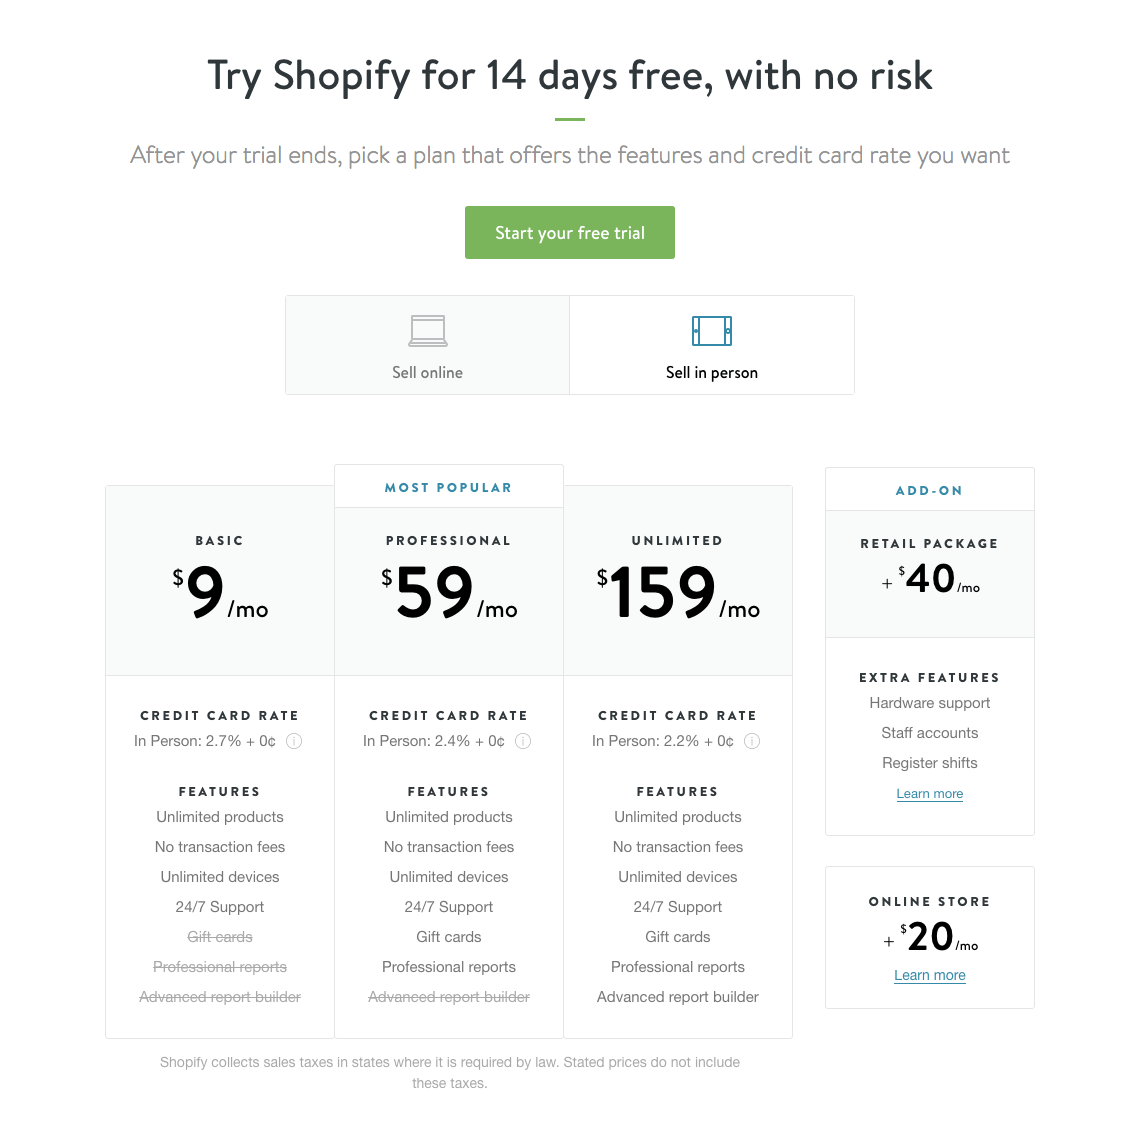 Shopify Pricing Early 2015 - 2